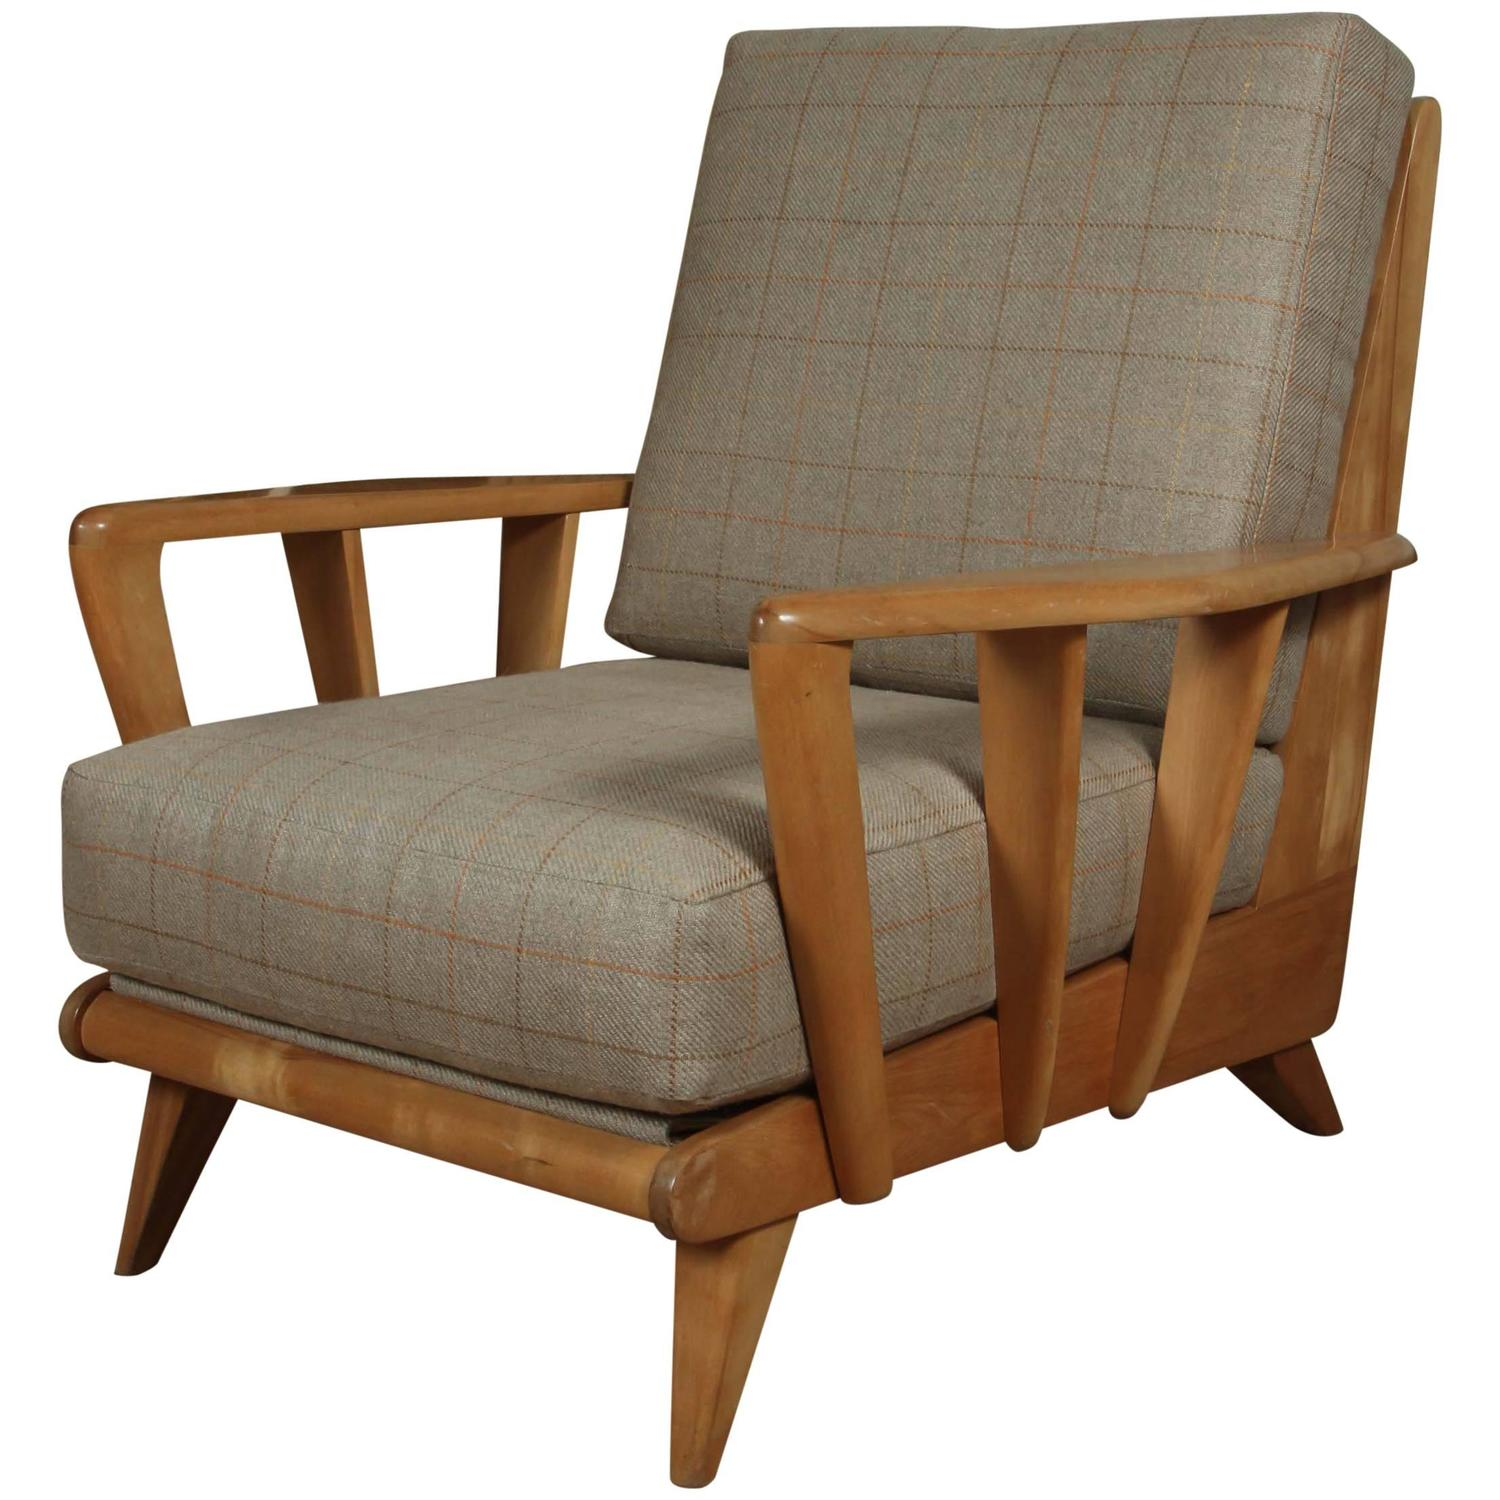 heywood wakefield chairs outdoor recliner lounge chair for sale at 1stdibs